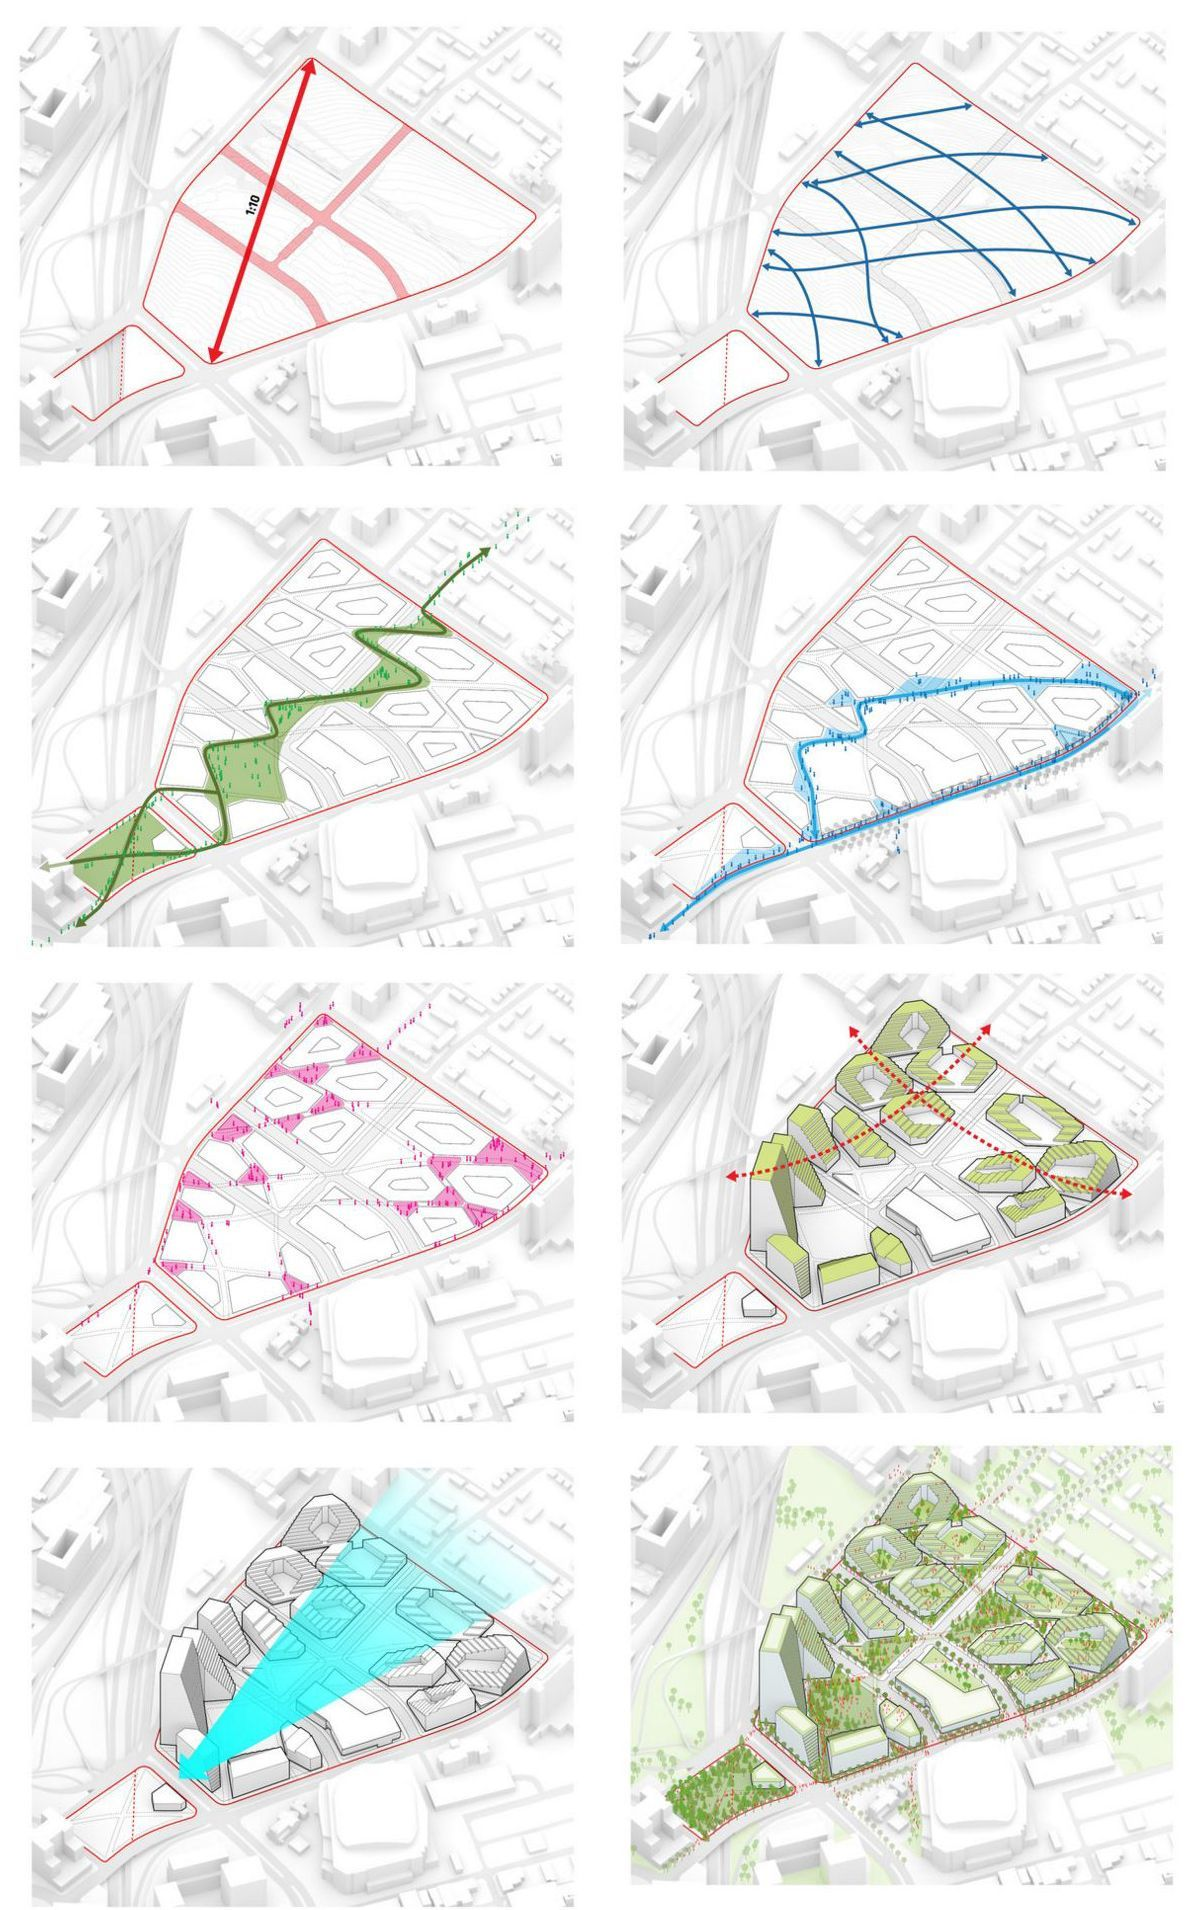 Gallery of New Lower Hill Masterplan / West 8 + BIG + Atelier Ten  - 8